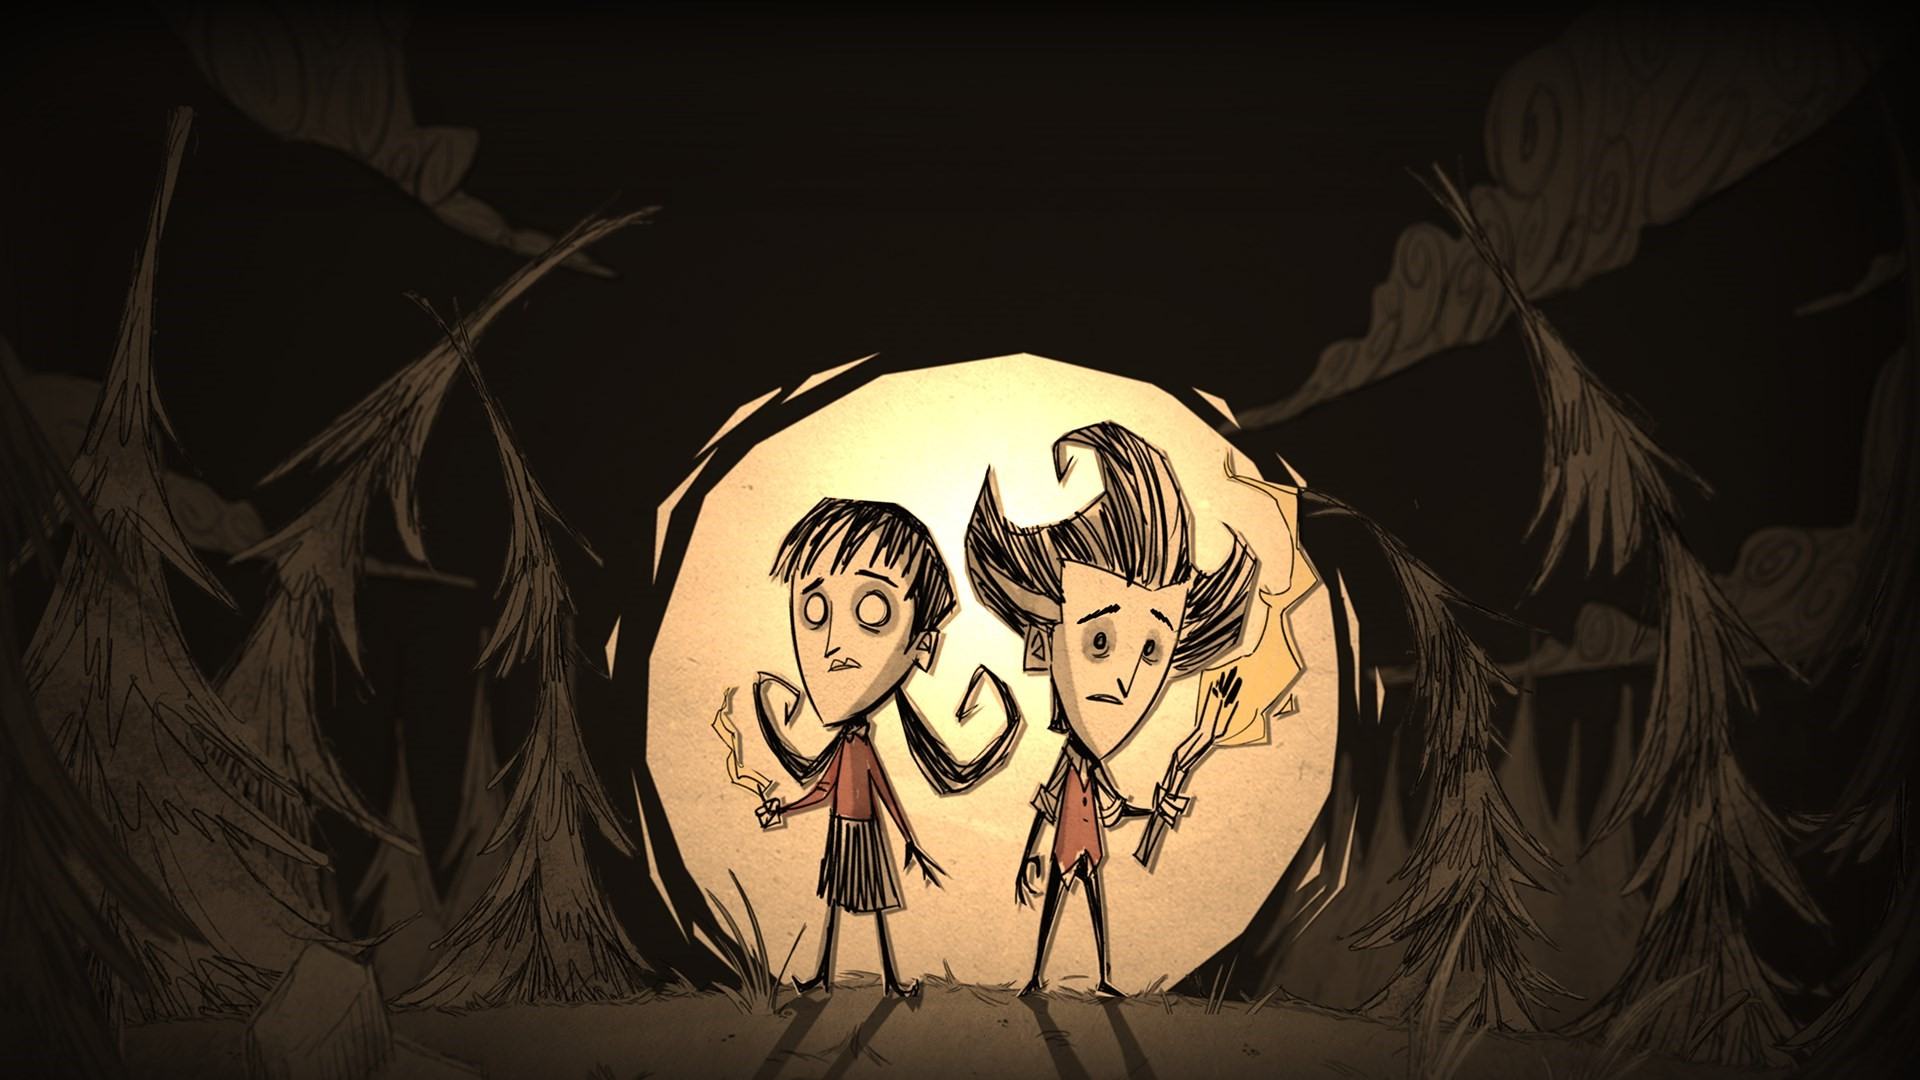 Don't Starve Together | 9 Best Video Games for Couples | Brain Berries